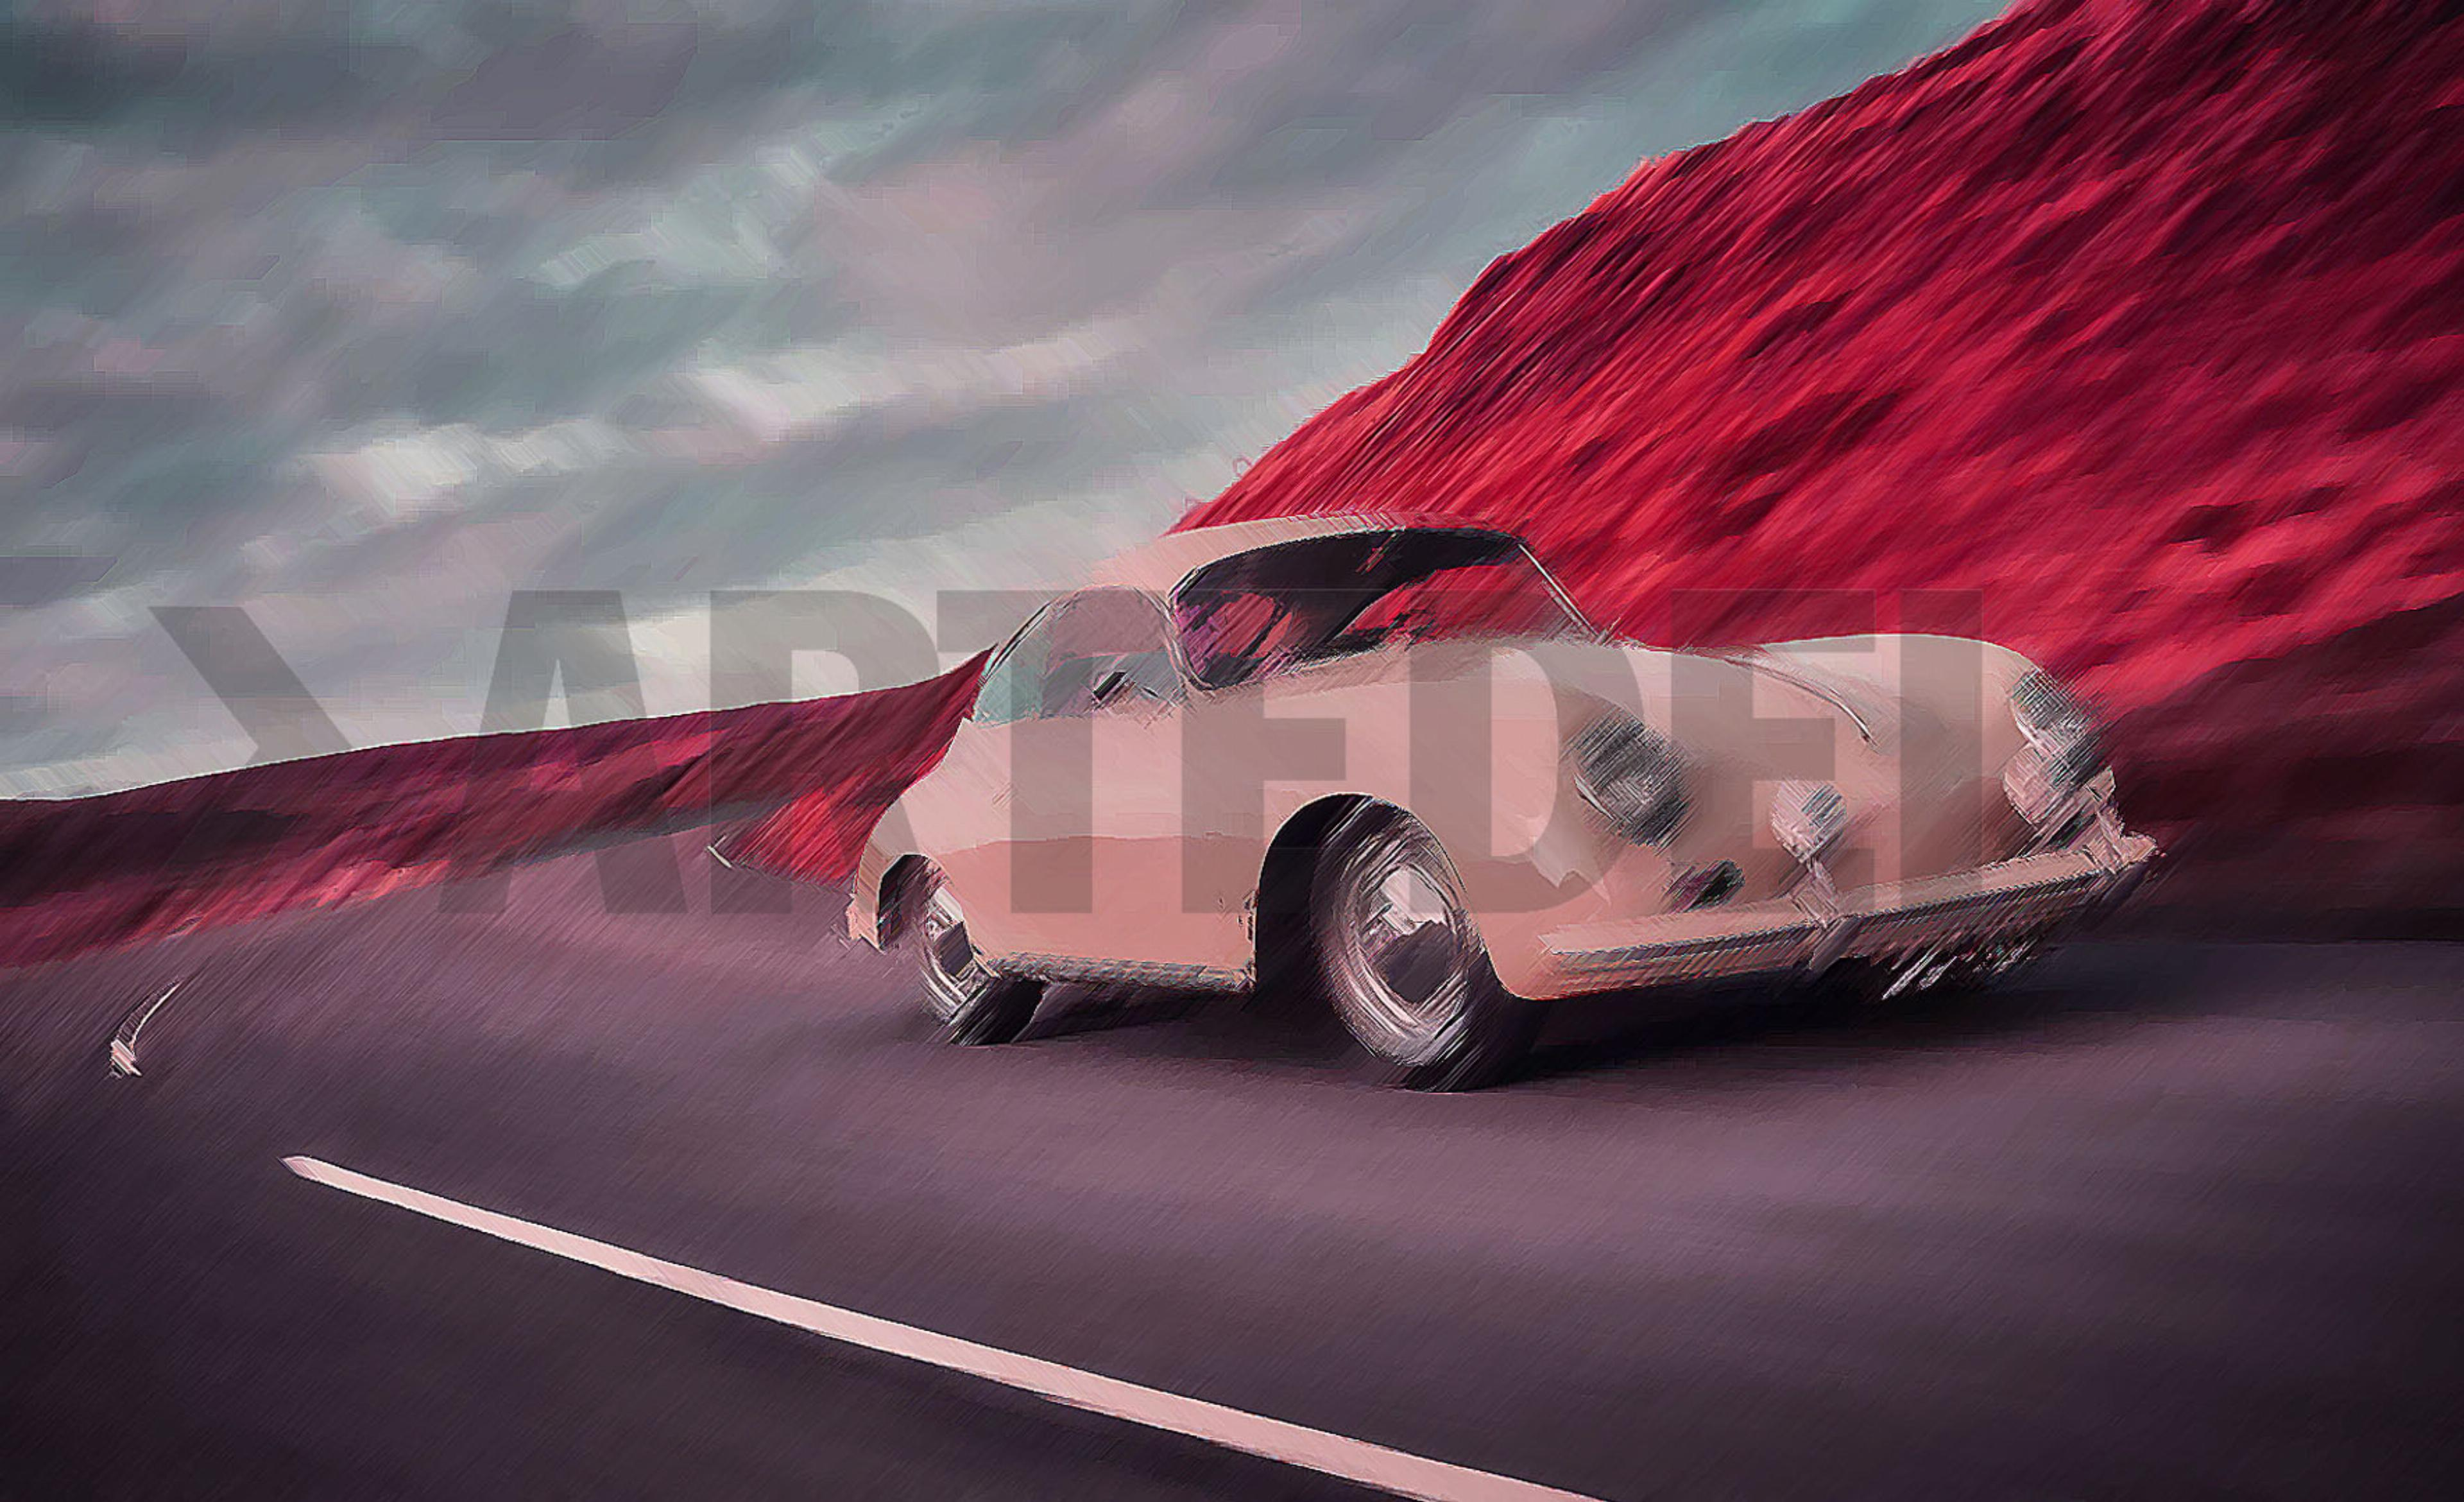 Product image of PORSCHE, PORSCHE 356